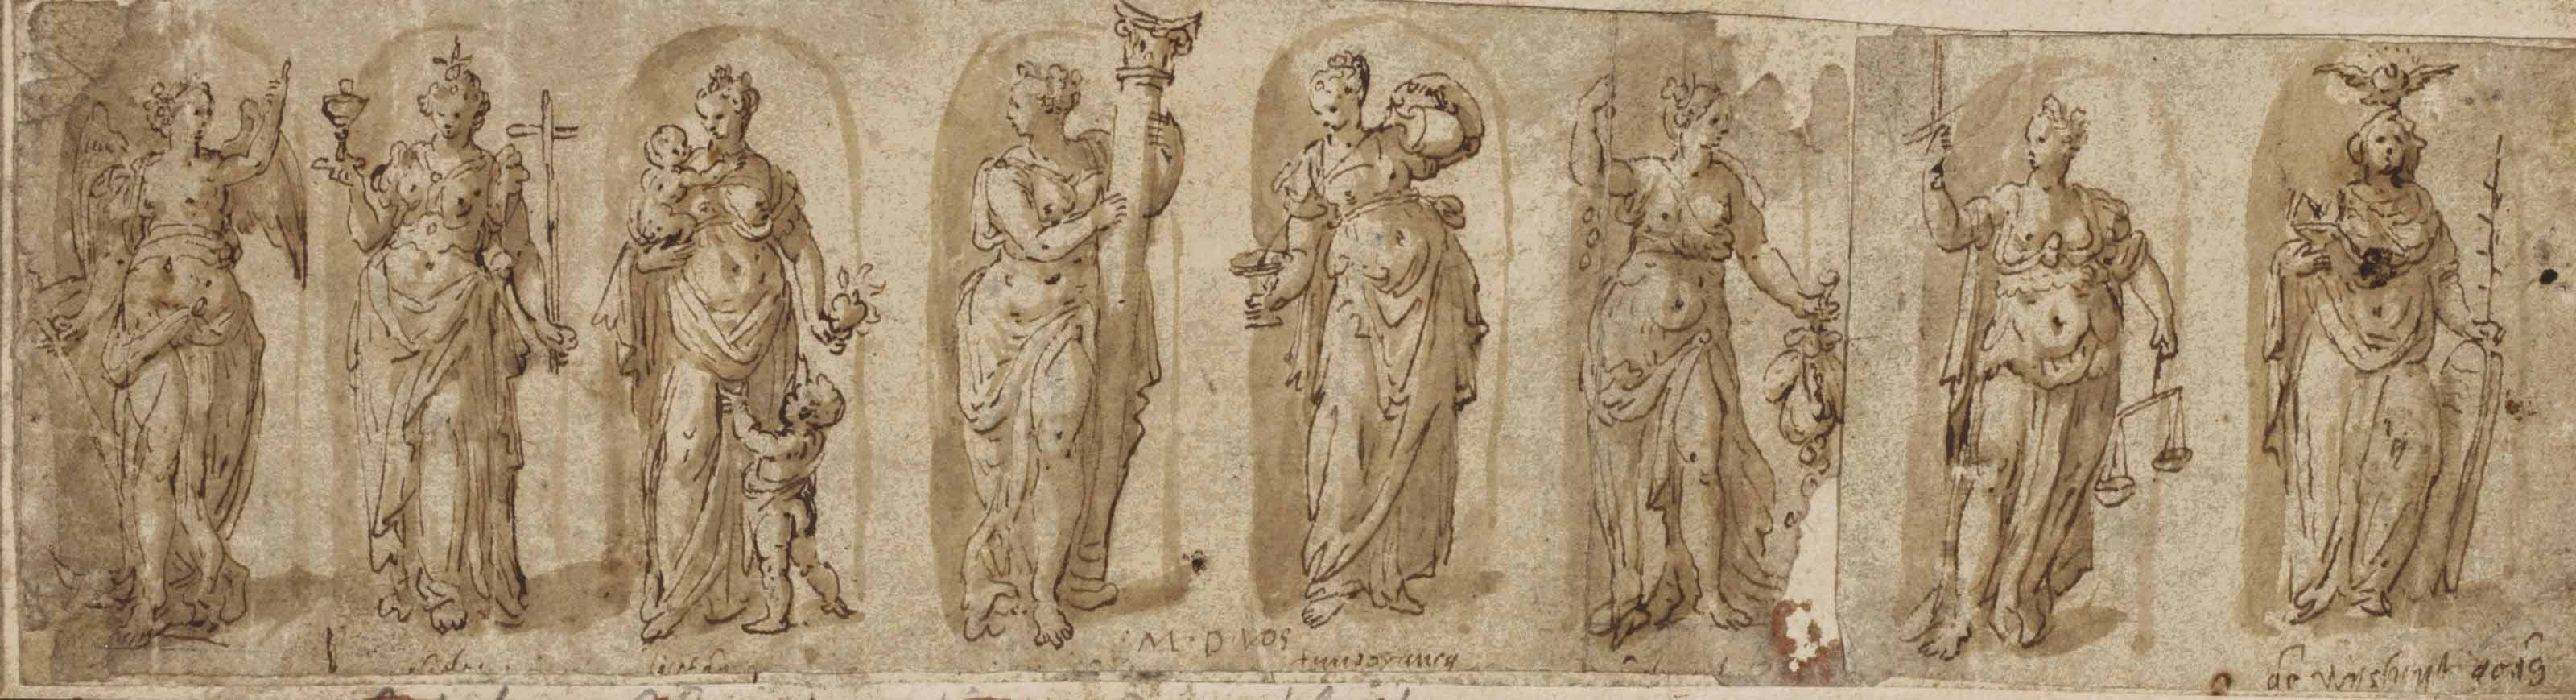 The Theological and Cardinal Virtues with Wisdom: Hope, Faith, Charity, Fortitude, Temperance, Liberality, Justice and Sapientia